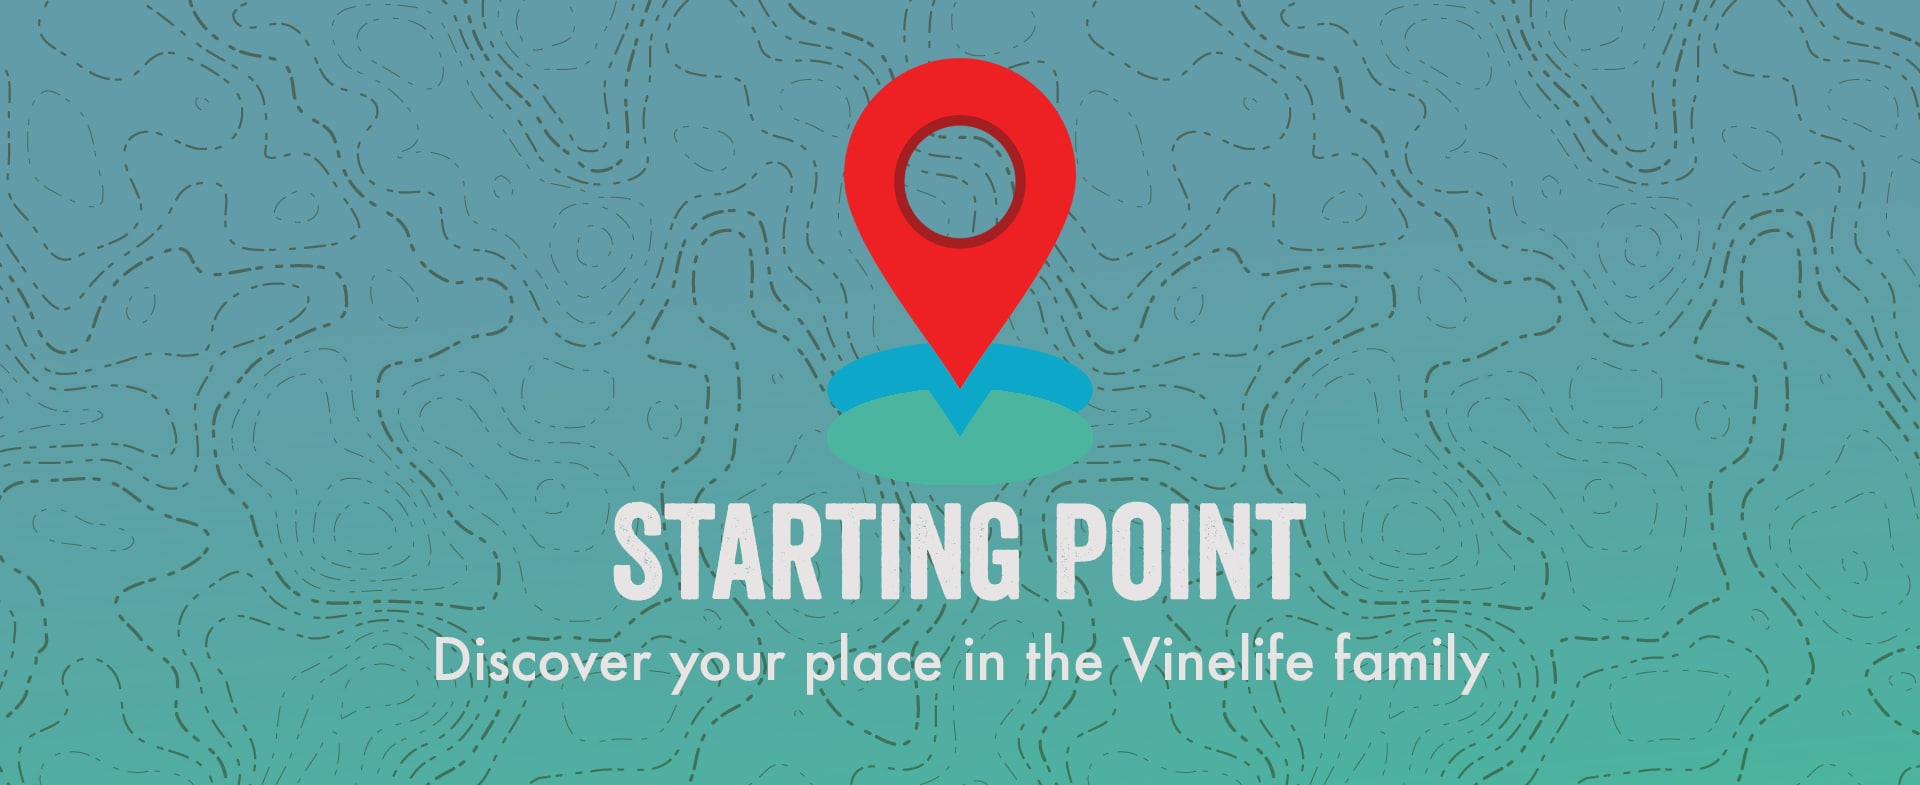 Starting Point Vinelife Church